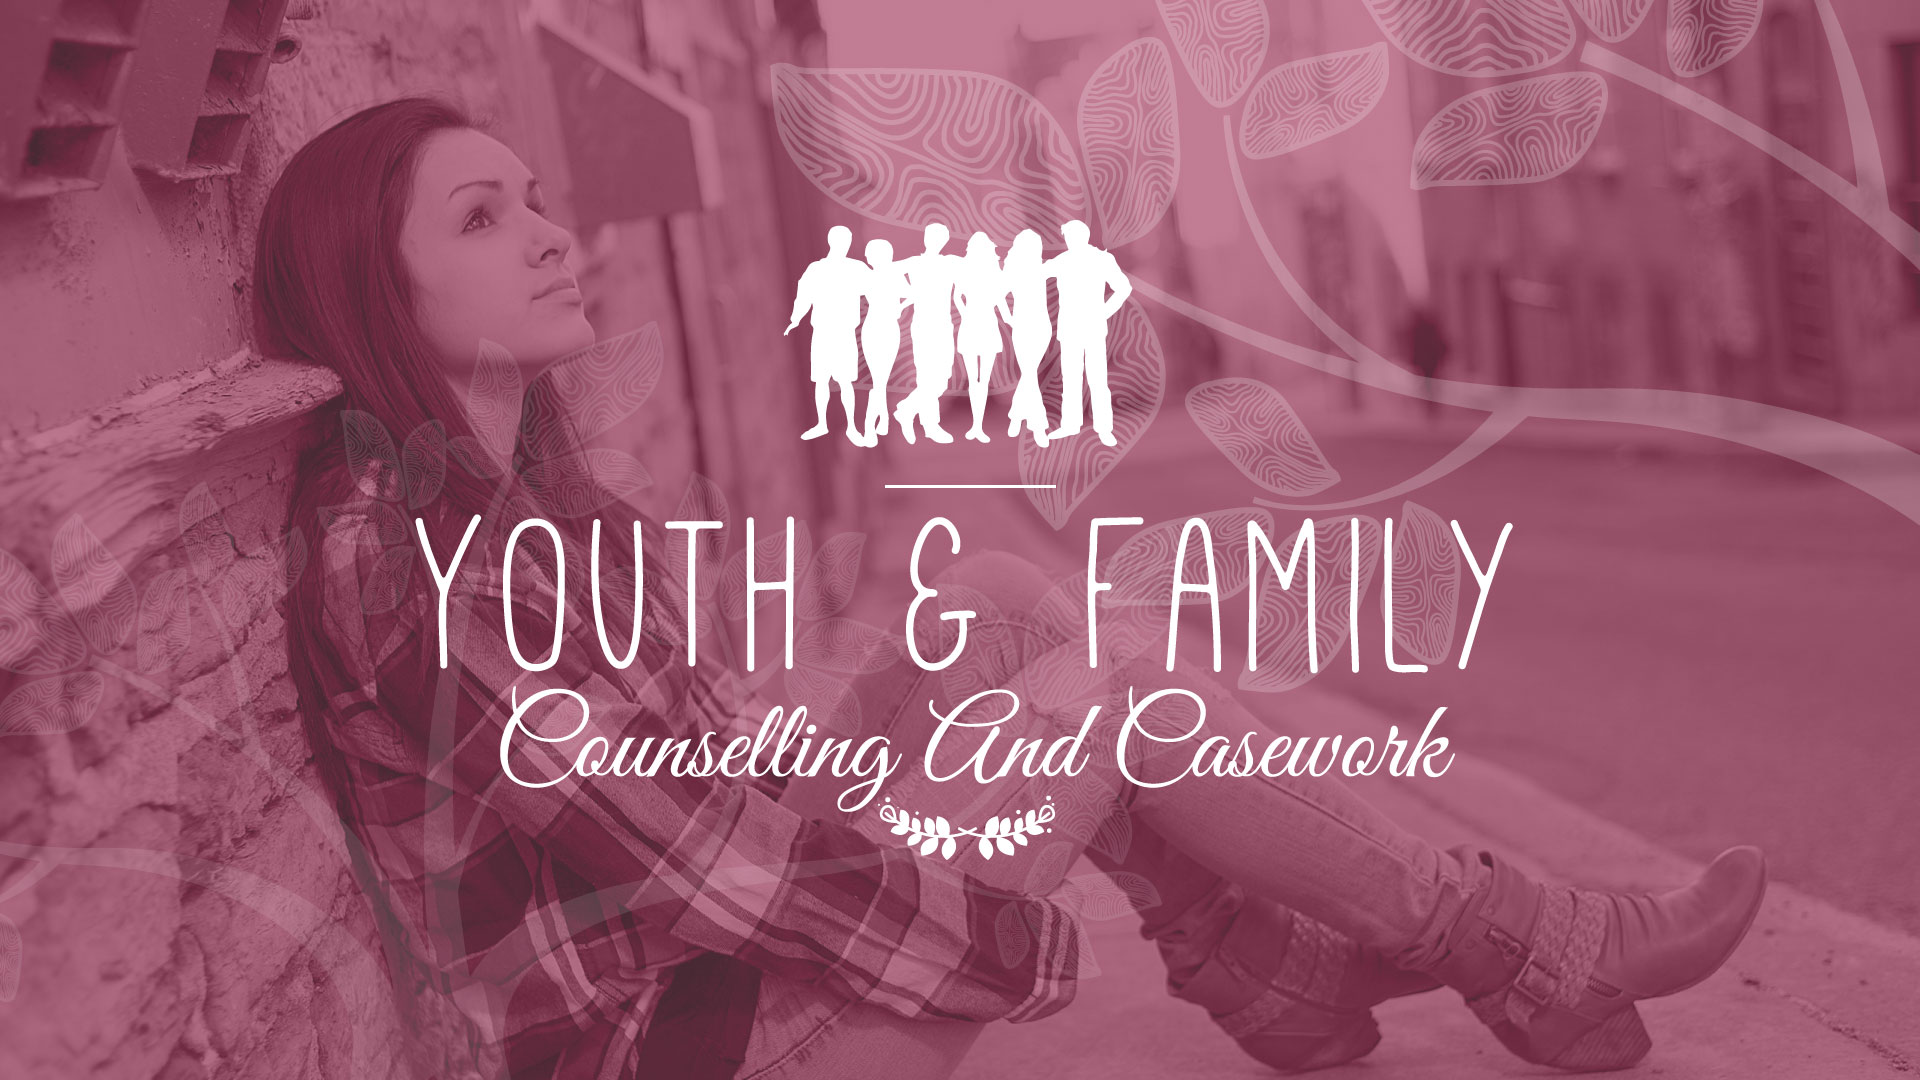 Youth Counselling And Casework